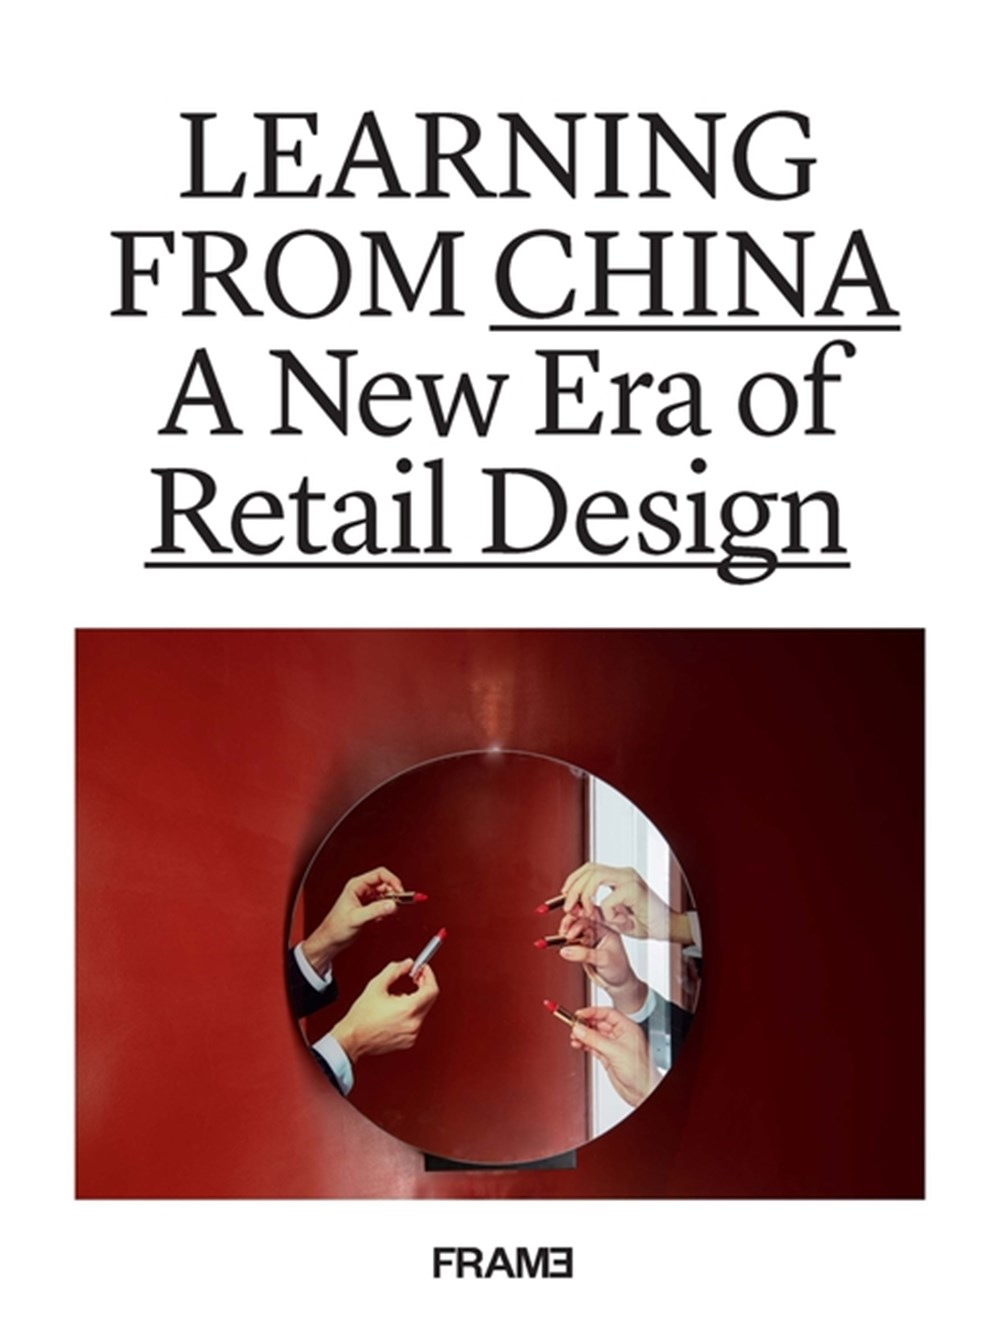 Learning from China A New Era of Retail Design